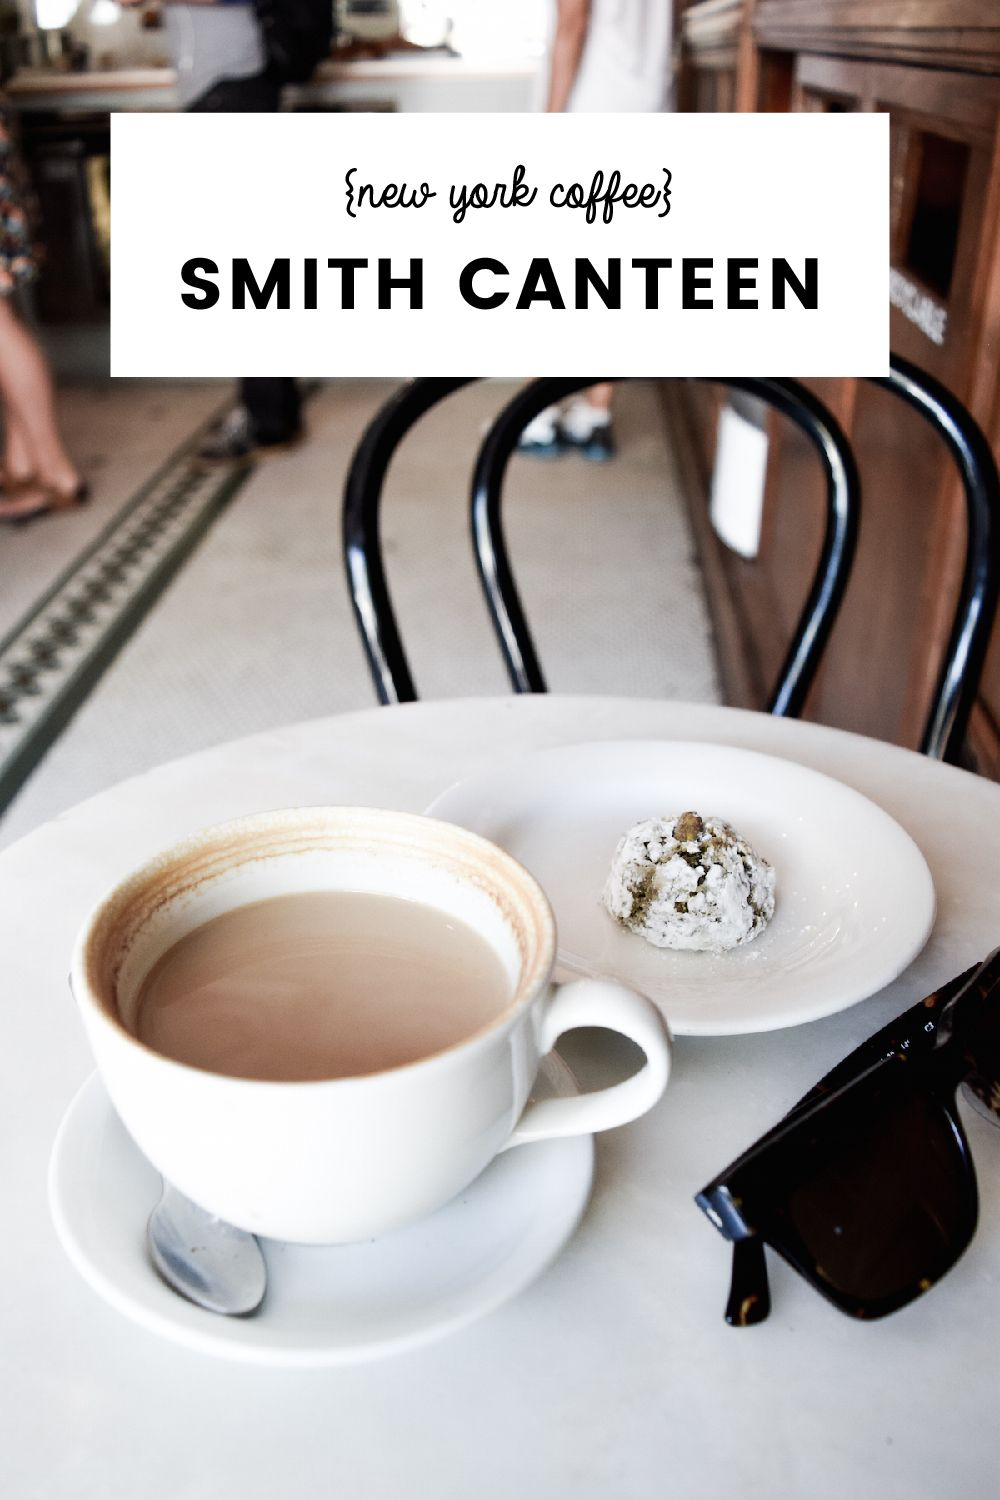 Smith Canteen Brooklyn